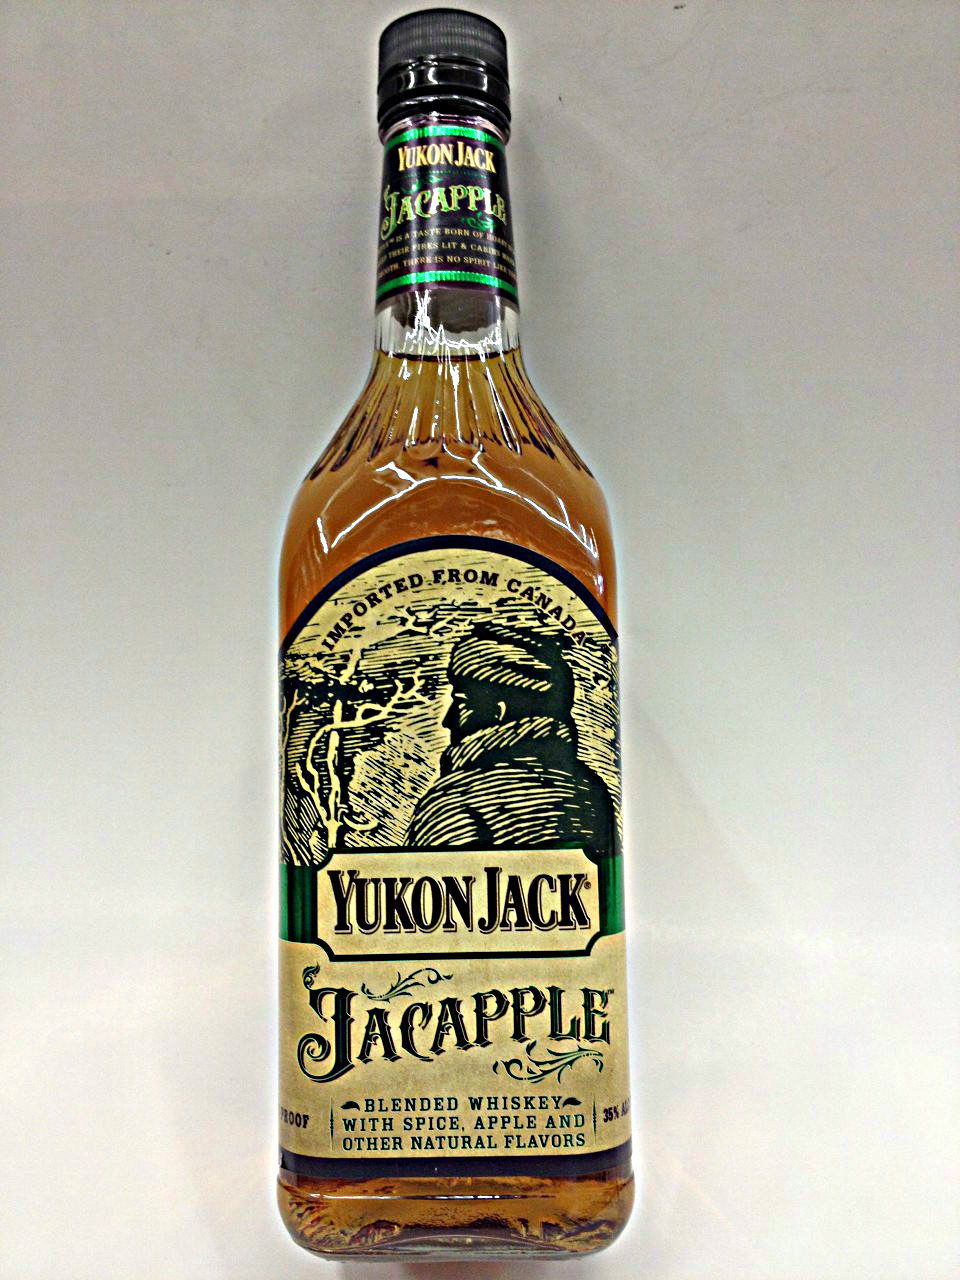 Yukon Jack Jacapple Blended Whiskey Quality Liquor Store